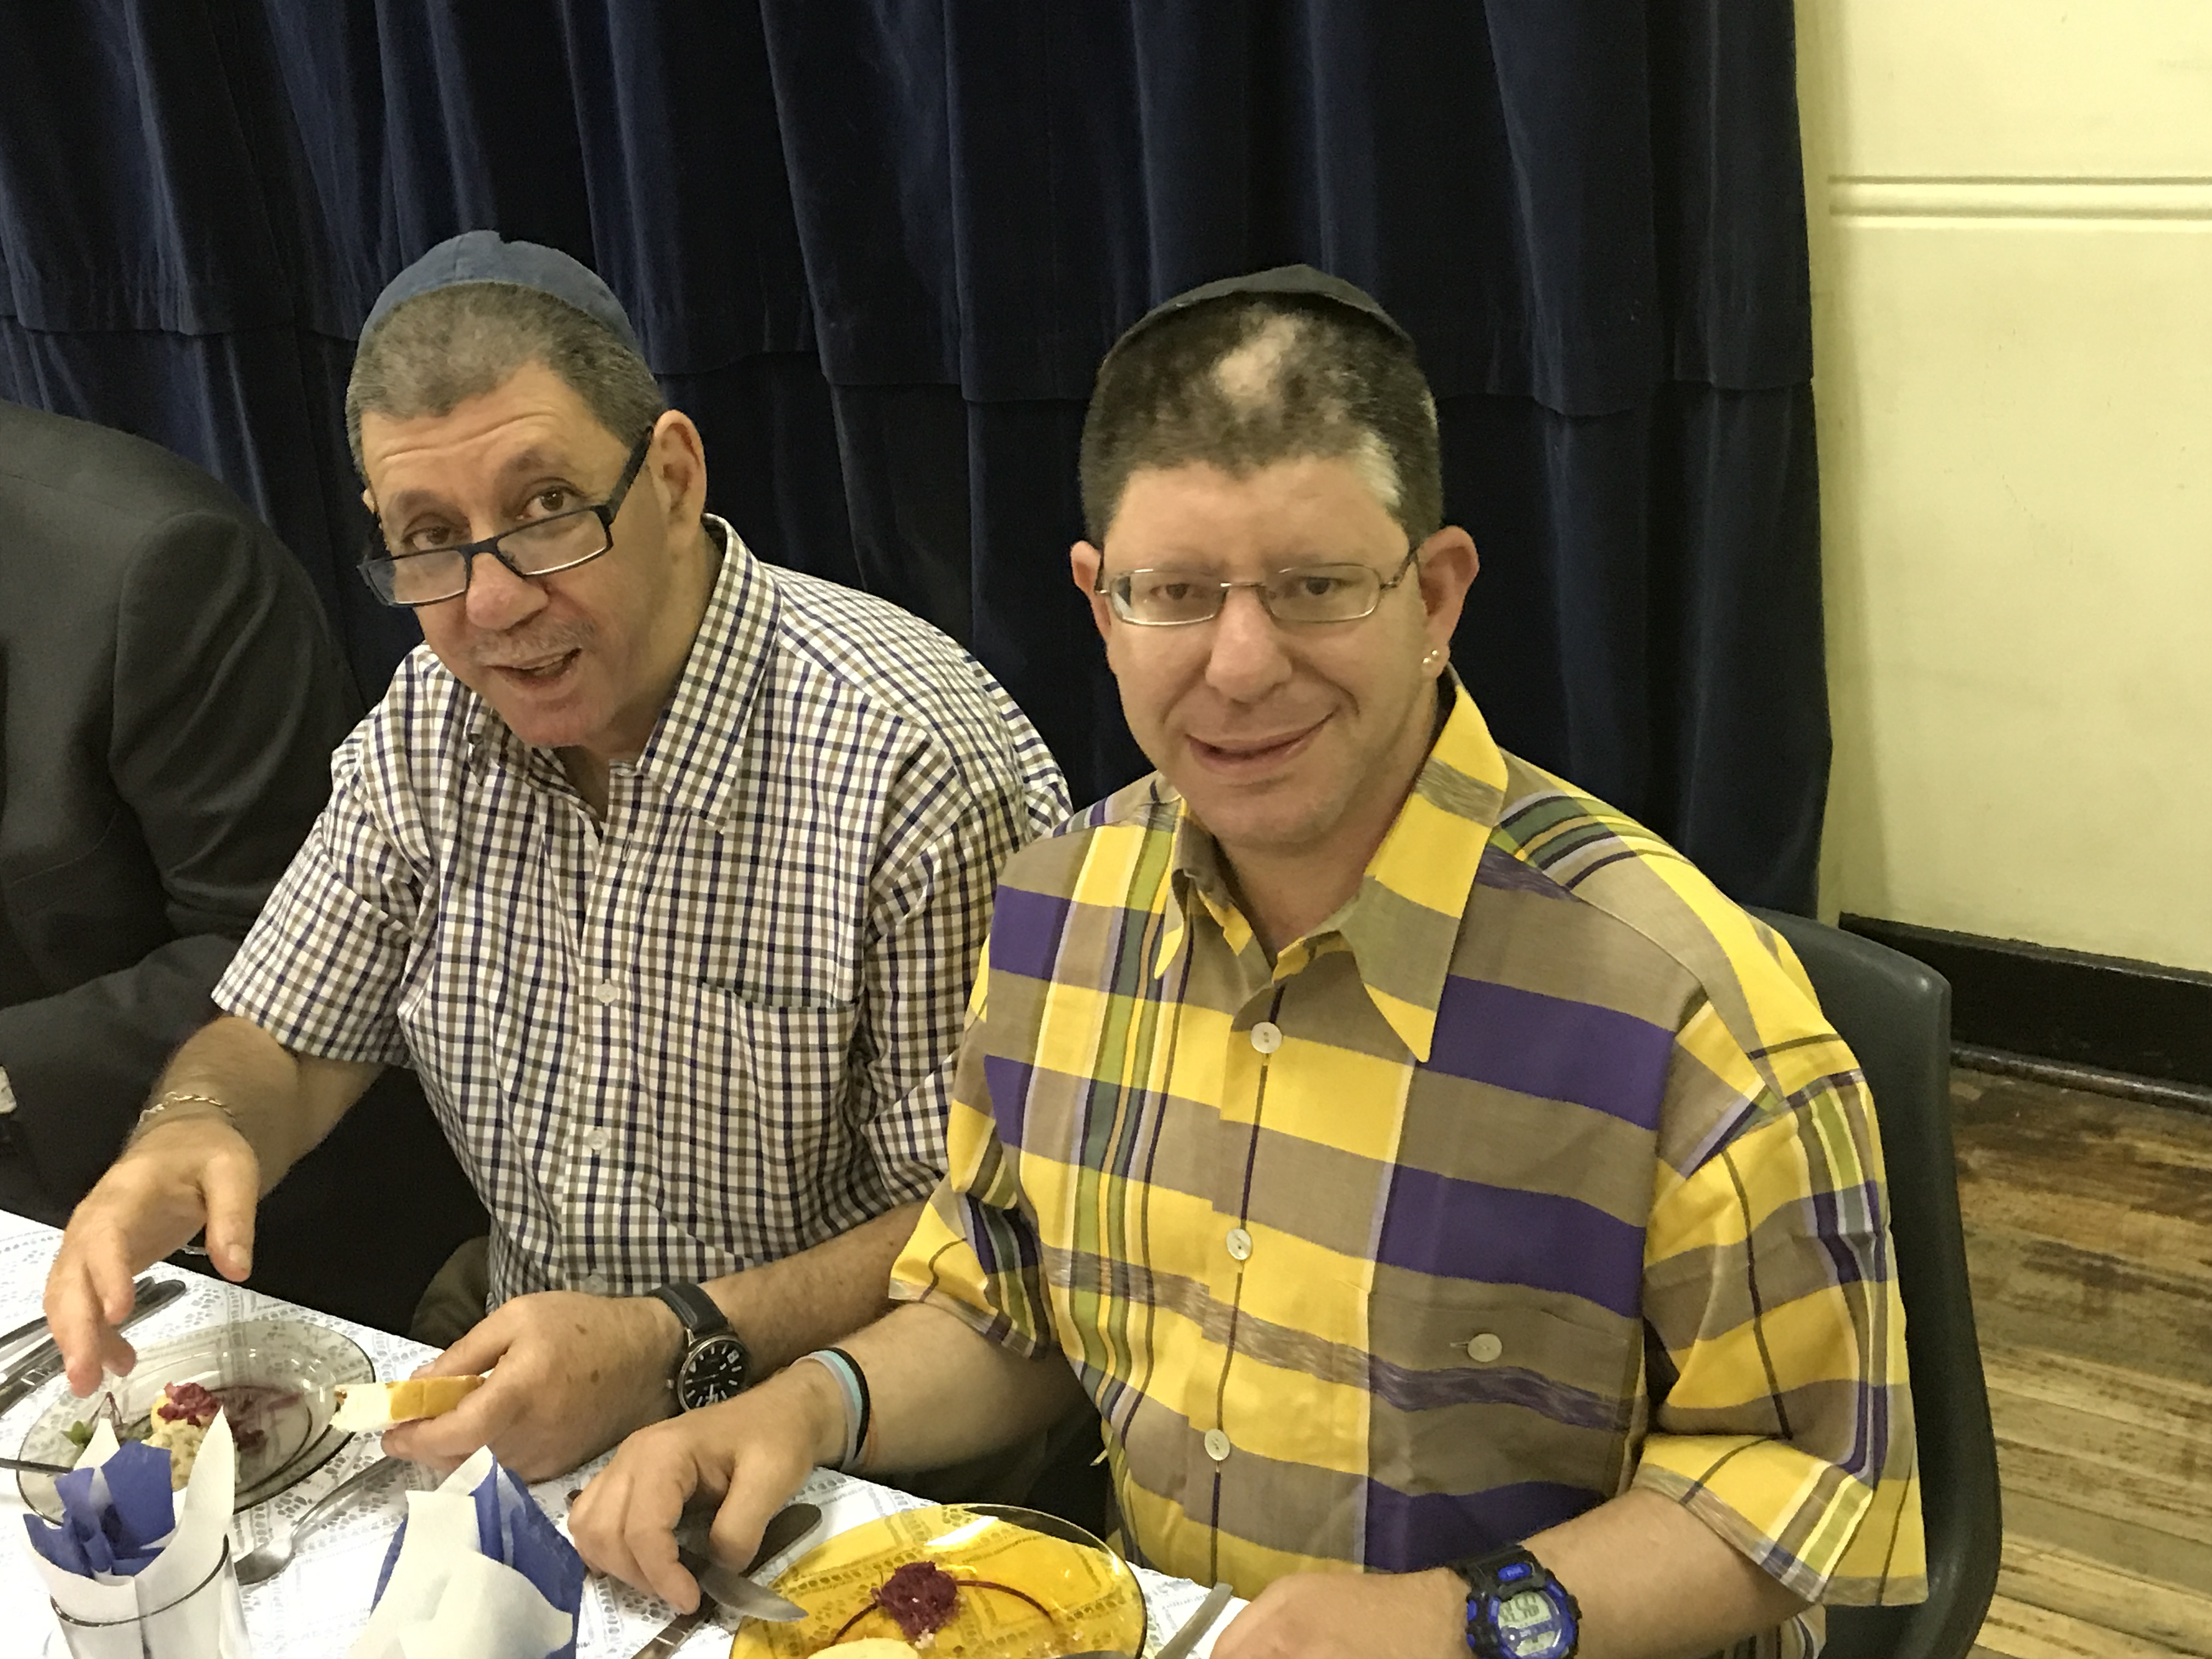 Peter and Harold Joffe